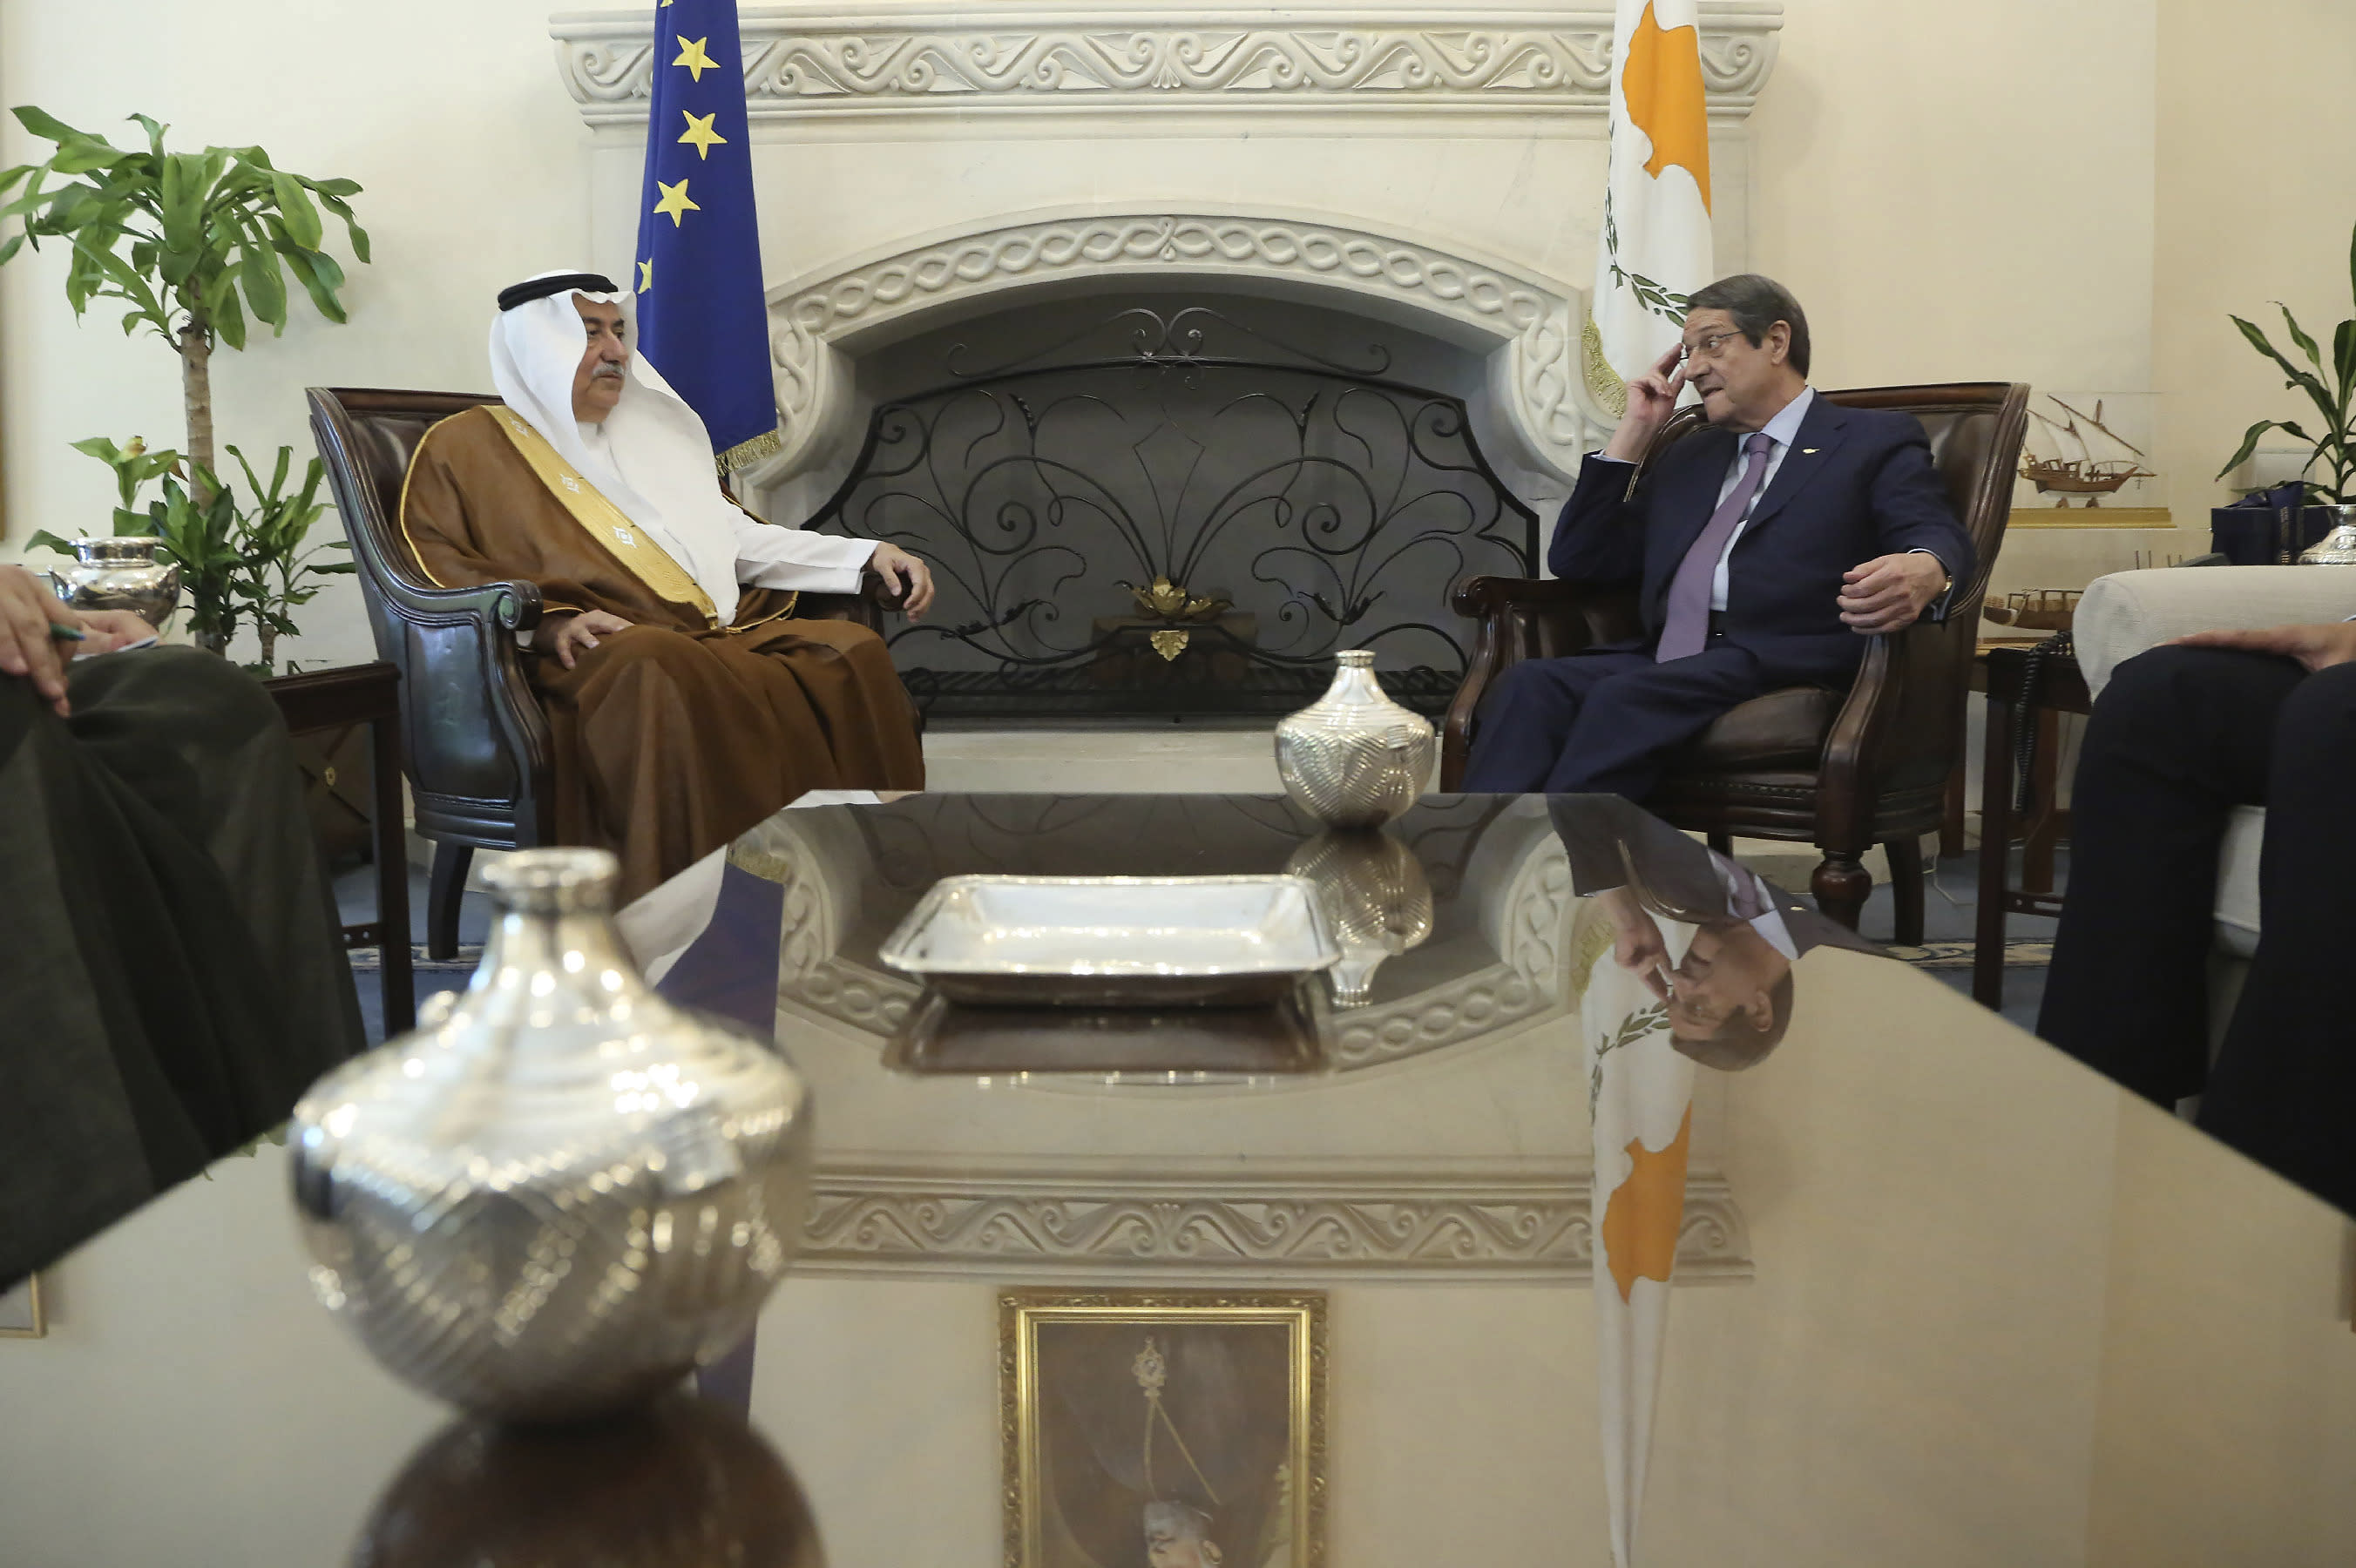 Cyprus' president Nicos Anastasiades, right, and Saudi Foreign Minister Ibrahim Bin Abdulaziz Al-Assaf talk during their meeting at the presidential palace in capital Nicosia, Cyprus, Wednesday Sept. 11, 2019. Al-Assaf is in Cyprus for talks. (AP Photo/Petros Karadjias)